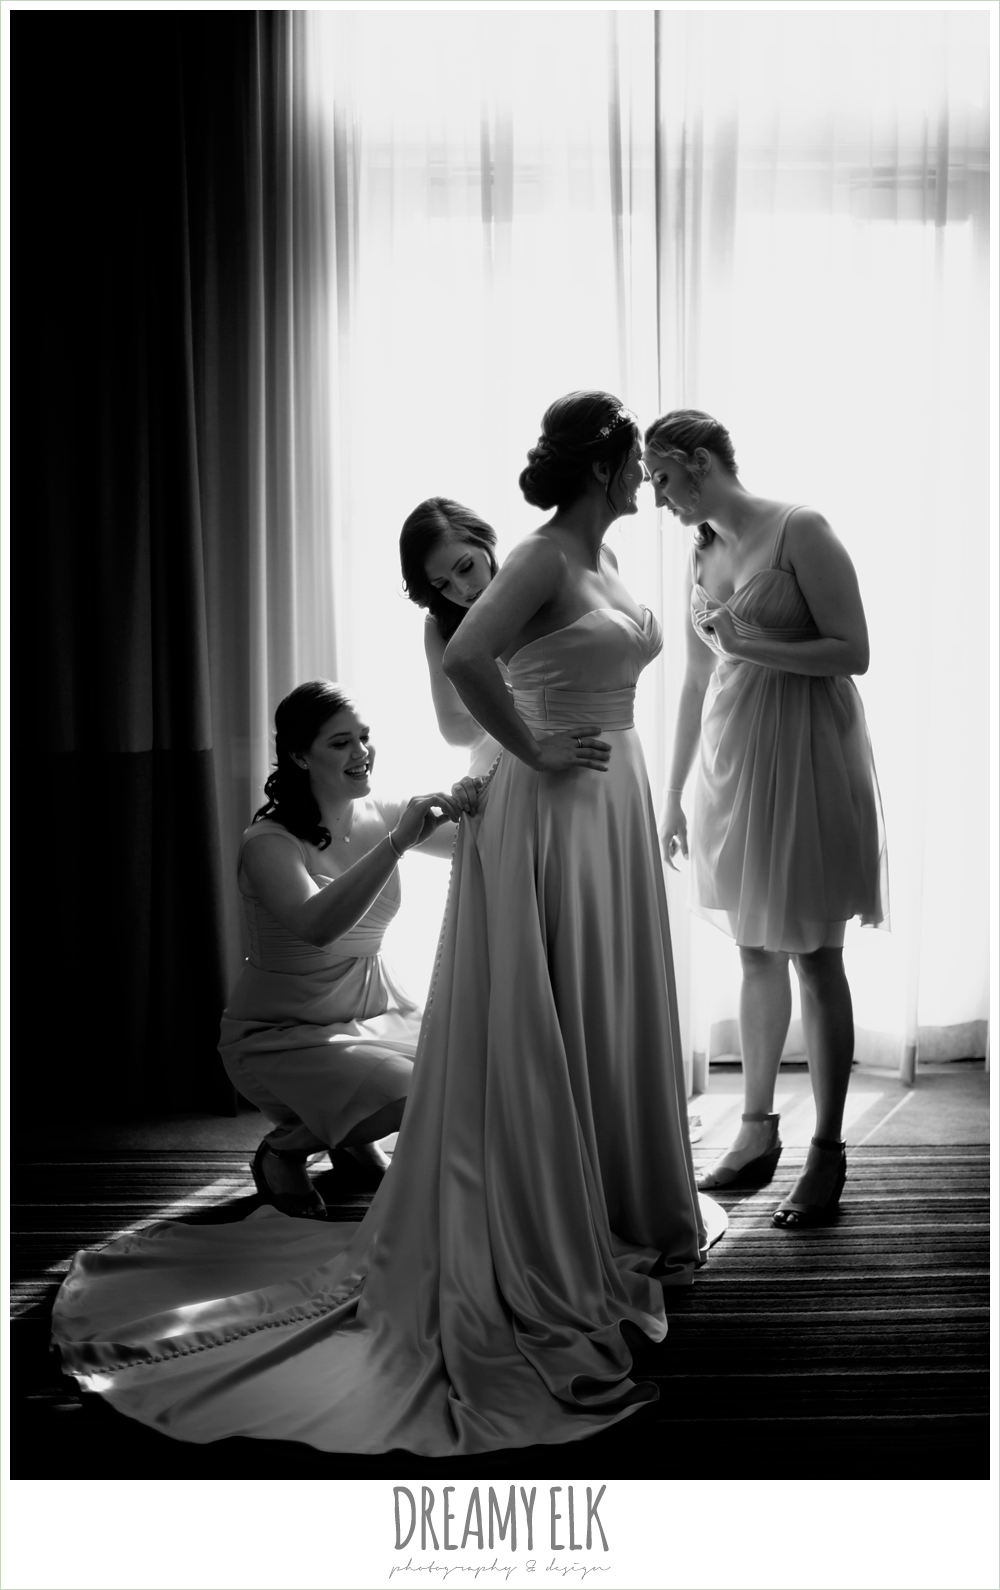 sweetheart strapless justin alexander wedding dress in sand color, silhouette, bride getting dressed with bridesmaids, colorful outdoor sunday morning brunch wedding, hyatt hill country club, san antonio wedding photo {dreamy elk photography and design}